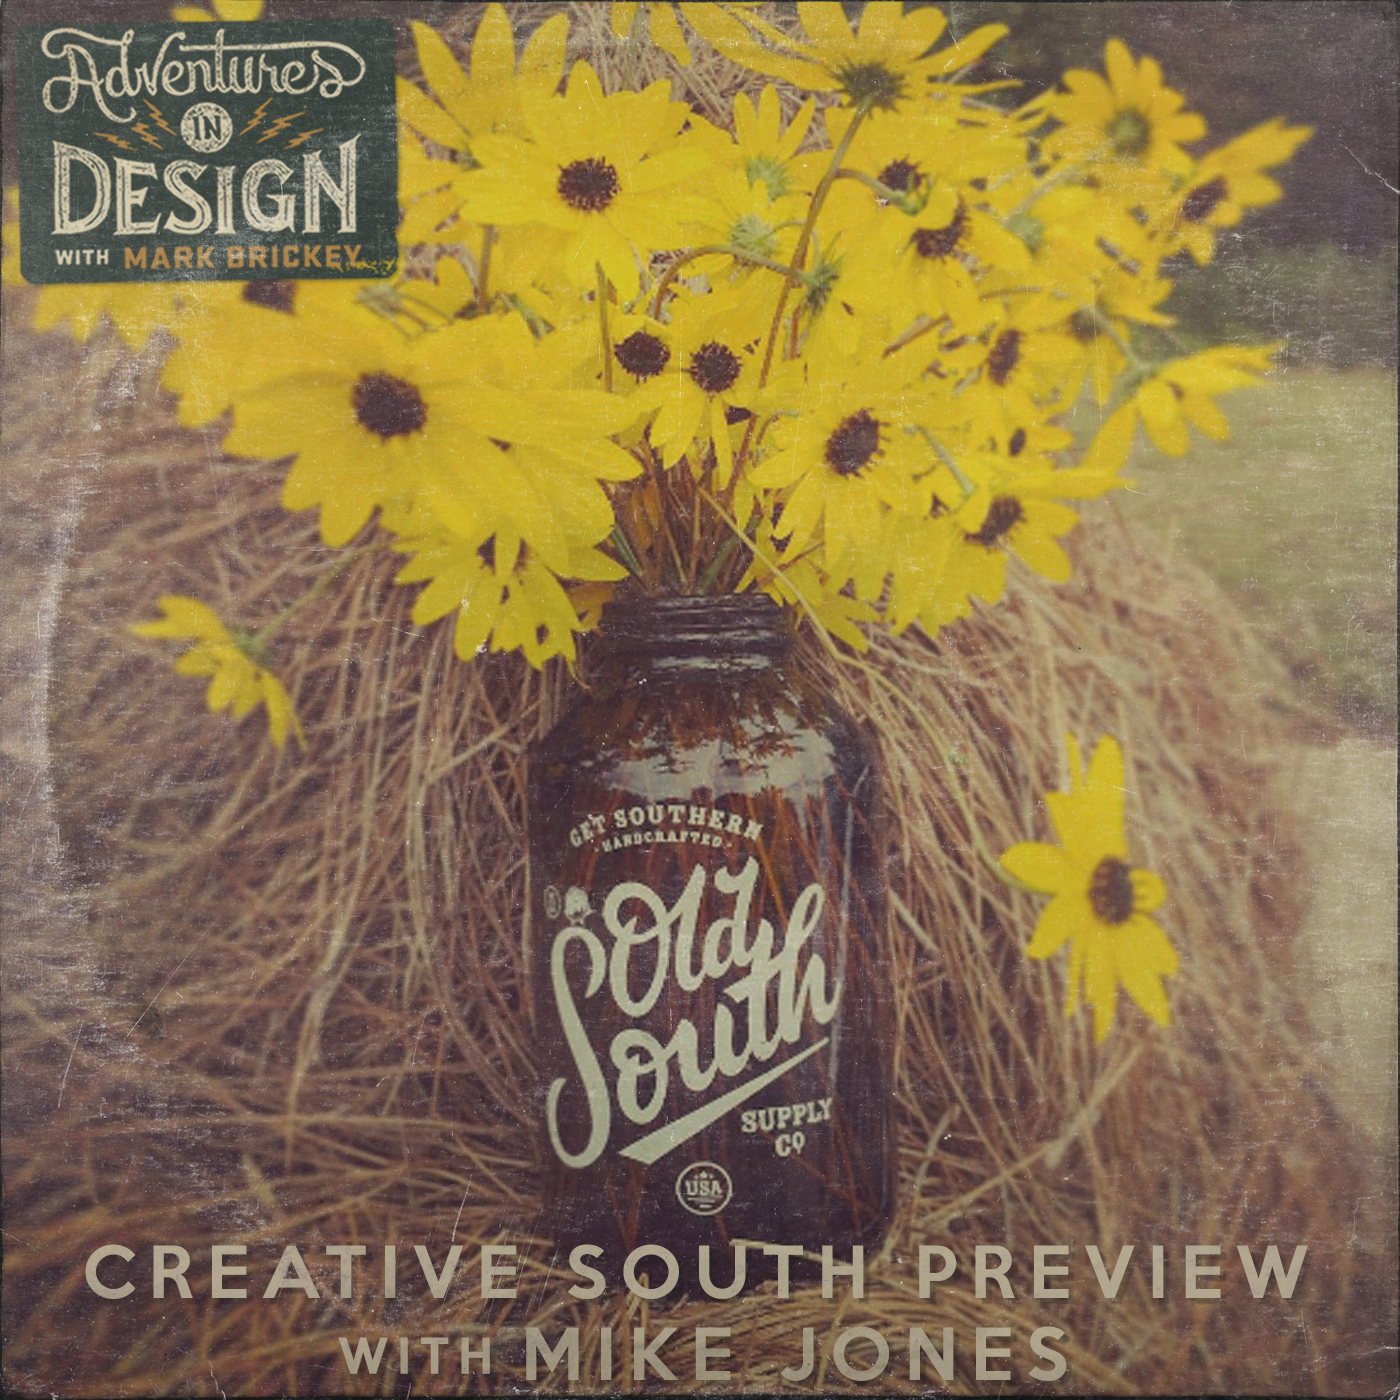 455 - Creative South Preview with Mike Jones